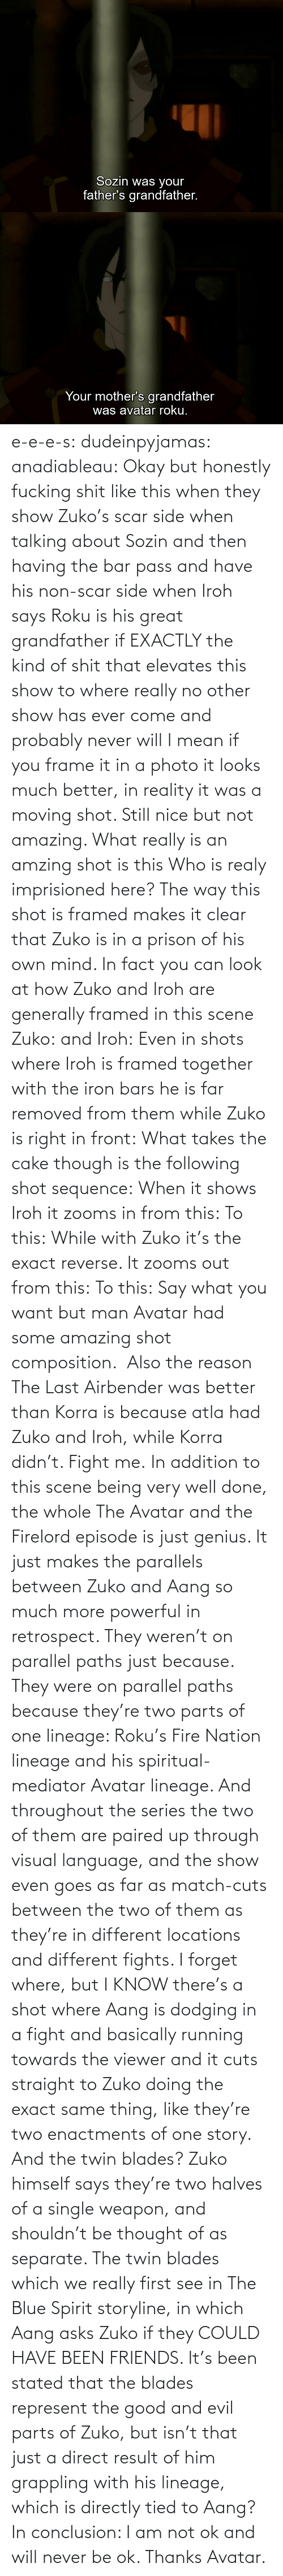 Blue: e-e-e-s: dudeinpyjamas:   anadiableau: Okay but honestly fucking shit like this when they show Zuko's scar side when talking about Sozin and then having the bar pass and have his non-scar side when Iroh says Roku is his great grandfather if EXACTLY the kind of shit that elevates this show to where really no other show has ever come and probably never will I mean if you frame it in a photo it looks much better, in reality it was a moving shot. Still nice but not amazing. What really is an amzing shot is this Who is realy imprisioned here? The way this shot is framed makes it clear that Zuko is in a prison of his own mind. In fact you can look at how Zuko and Iroh are generally framed in this scene Zuko: and Iroh: Even in shots where Iroh is framed together with the iron bars he is far removed from them while Zuko is right in front:  What takes the cake though is the following shot sequence: When it shows Iroh it zooms in from this: To this: While with Zuko it's the exact reverse. It zooms out from this: To this: Say what you want but man Avatar had some amazing shot composition.   Also the reason The Last Airbender was better than Korra is because atla had Zuko and Iroh, while Korra didn't. Fight me.    In addition to this scene being very well done, the whole The Avatar and the Firelord episode is just genius.  It just makes the parallels between Zuko and Aang so much more powerful in retrospect.  They weren't on parallel paths just because.  They were on parallel paths because they're two parts of one lineage: Roku's Fire Nation lineage and his spiritual-mediator Avatar lineage.  And throughout the series the two of them are paired up through visual language, and the show even goes as far as match-cuts between the two of them as they're in different locations and different fights.  I forget where, but I KNOW there's a shot where Aang is dodging in a fight and basically running towards the viewer and it cuts straight to Zuko doing the exact same thing, like they're two enactments of one story.   And the twin blades?  Zuko himself says they're two halves of a single weapon, and shouldn't be thought of as separate.  The twin blades which we really first see in The Blue Spirit storyline, in which Aang asks Zuko if they COULD HAVE BEEN FRIENDS.  It's been stated that the blades represent the good and evil parts of Zuko, but isn't that just a direct result of him grappling with his lineage, which is directly tied to Aang? In conclusion: I am not ok and will never be ok.  Thanks Avatar.